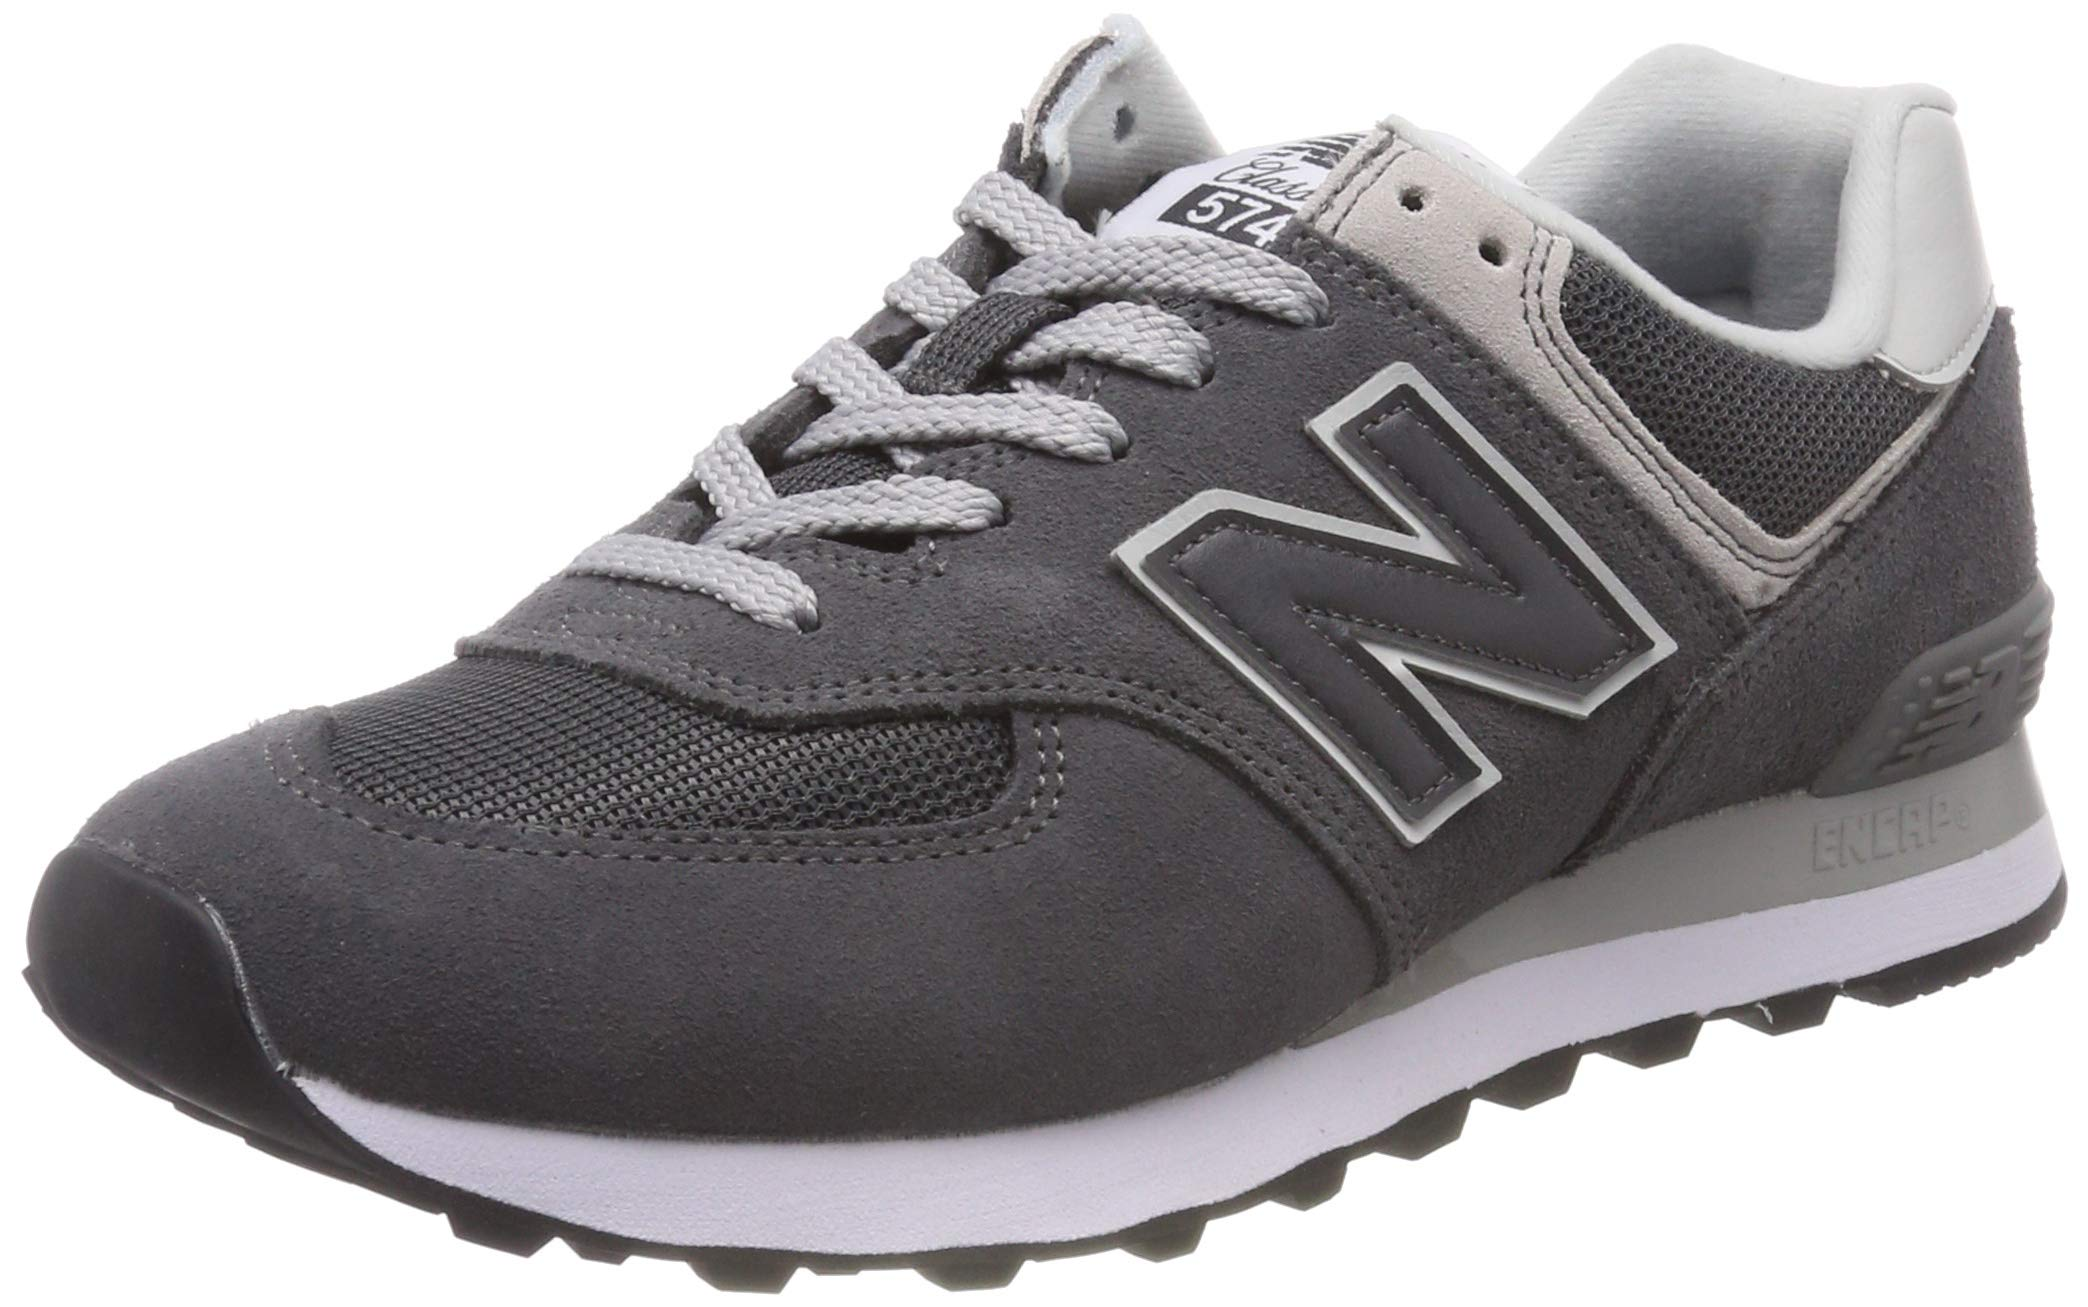 hot sale online b4f02 d2783 New Balance 574v2, Sneaker Uomo product image